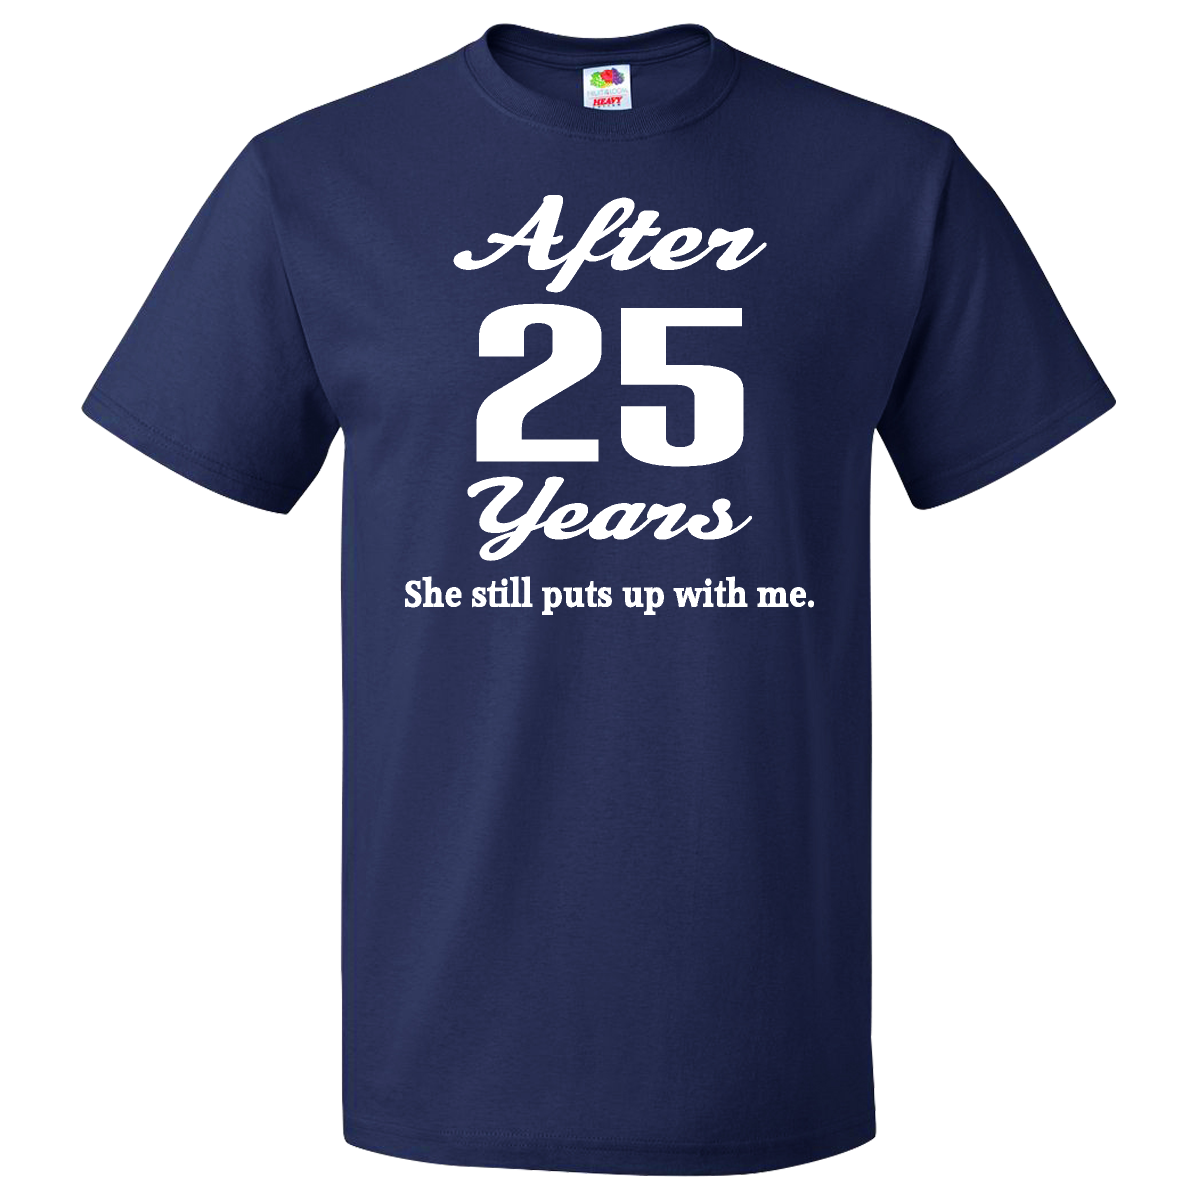 Funny 25th Anniversary Quote T Shirt Navy Blue 19 99 Www Weddinganniversarytshirts Com 25th Anniversary Quotes 25th Anniversary Shirts Anniversary Shirt